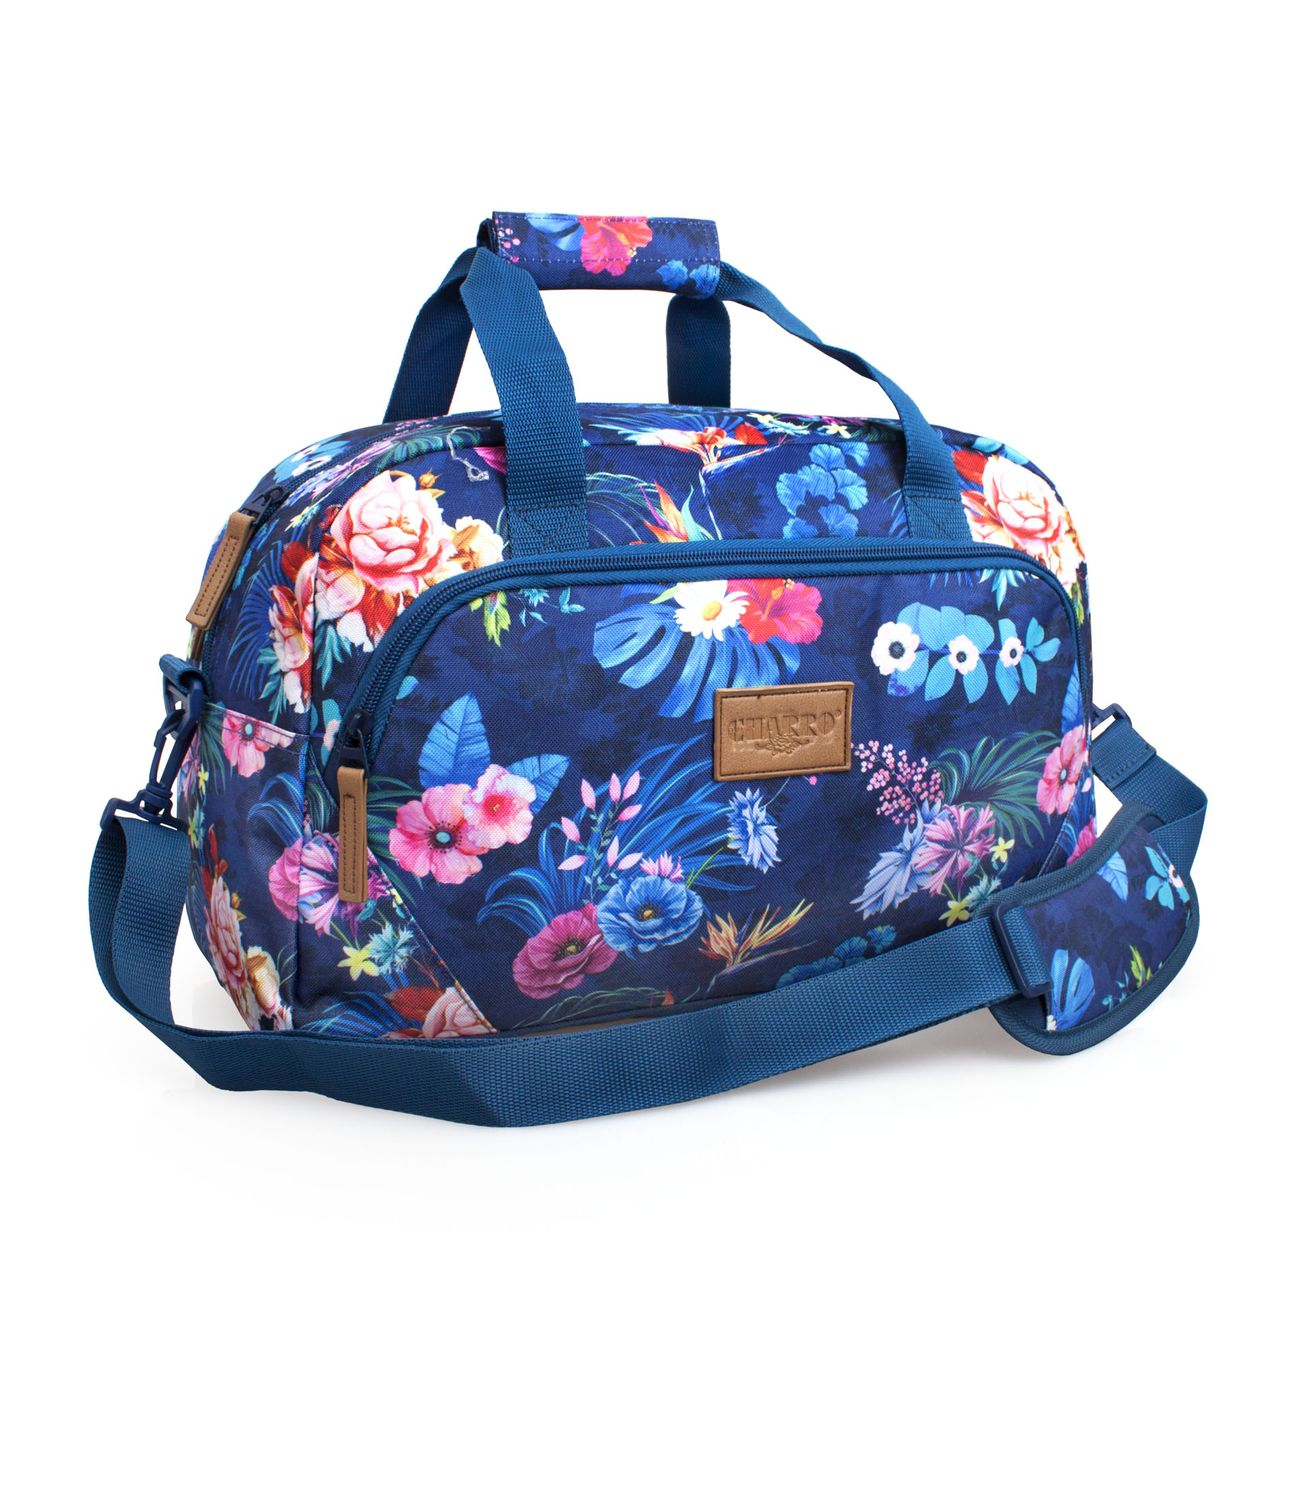 EL CHARRO Travel Bag Blue FLOWERS – image 1